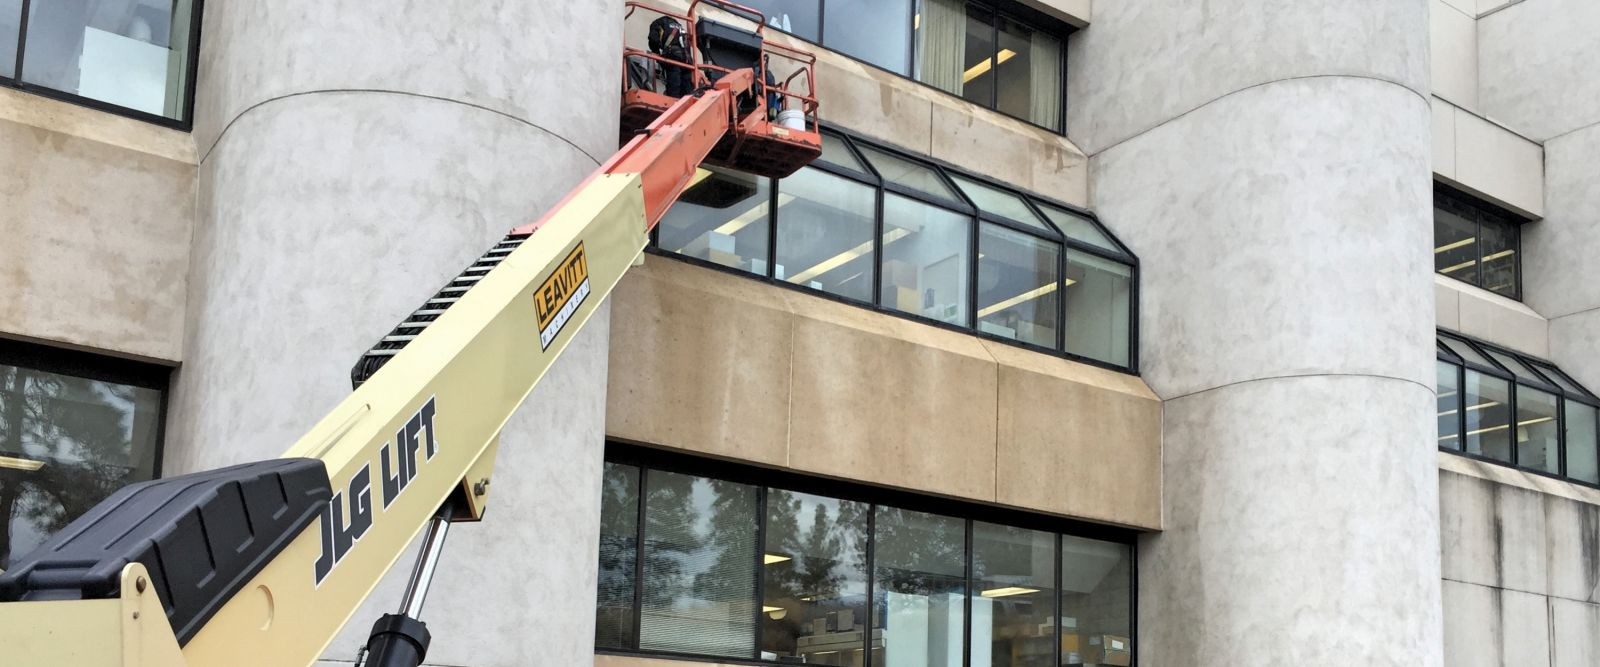 Pressure washing commercial building in Summerland